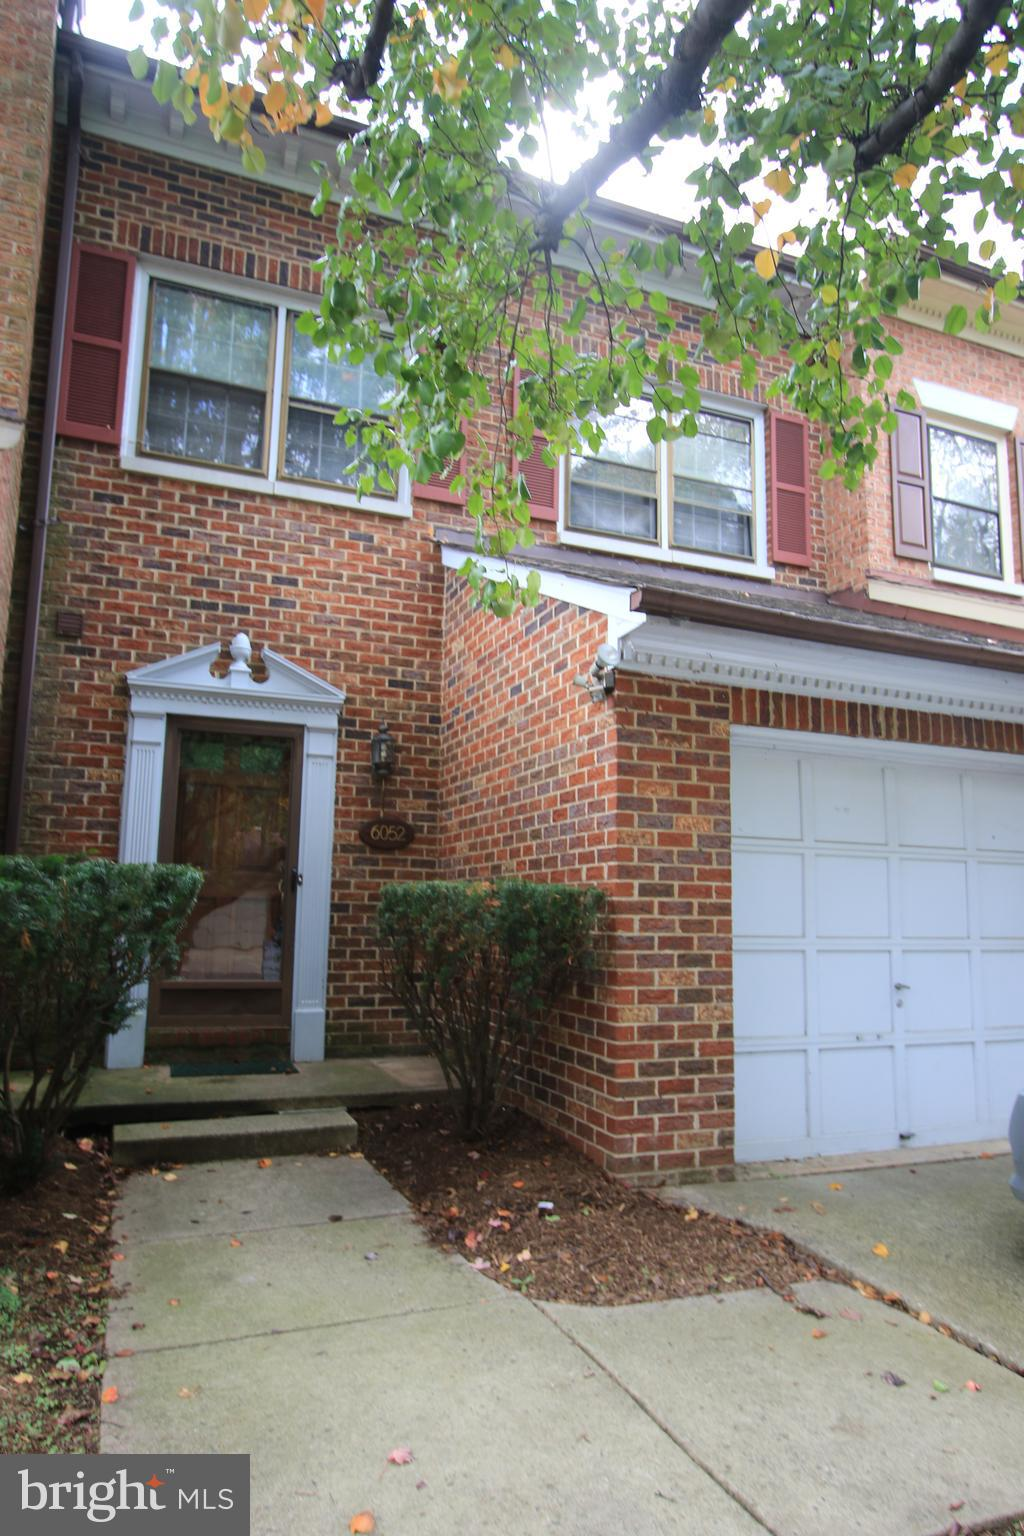 Four finished levels, Master Suite w/ lux. master bath & large loft, large attic storage space off loft area. Hardwood floors in foyer, living & dining rooms. Garage. Recreation room on lower level w/ wood burning fireplace & full bath. Fenced back yard. Easy access to I-495 and Metro.  $60 app fee per adult.